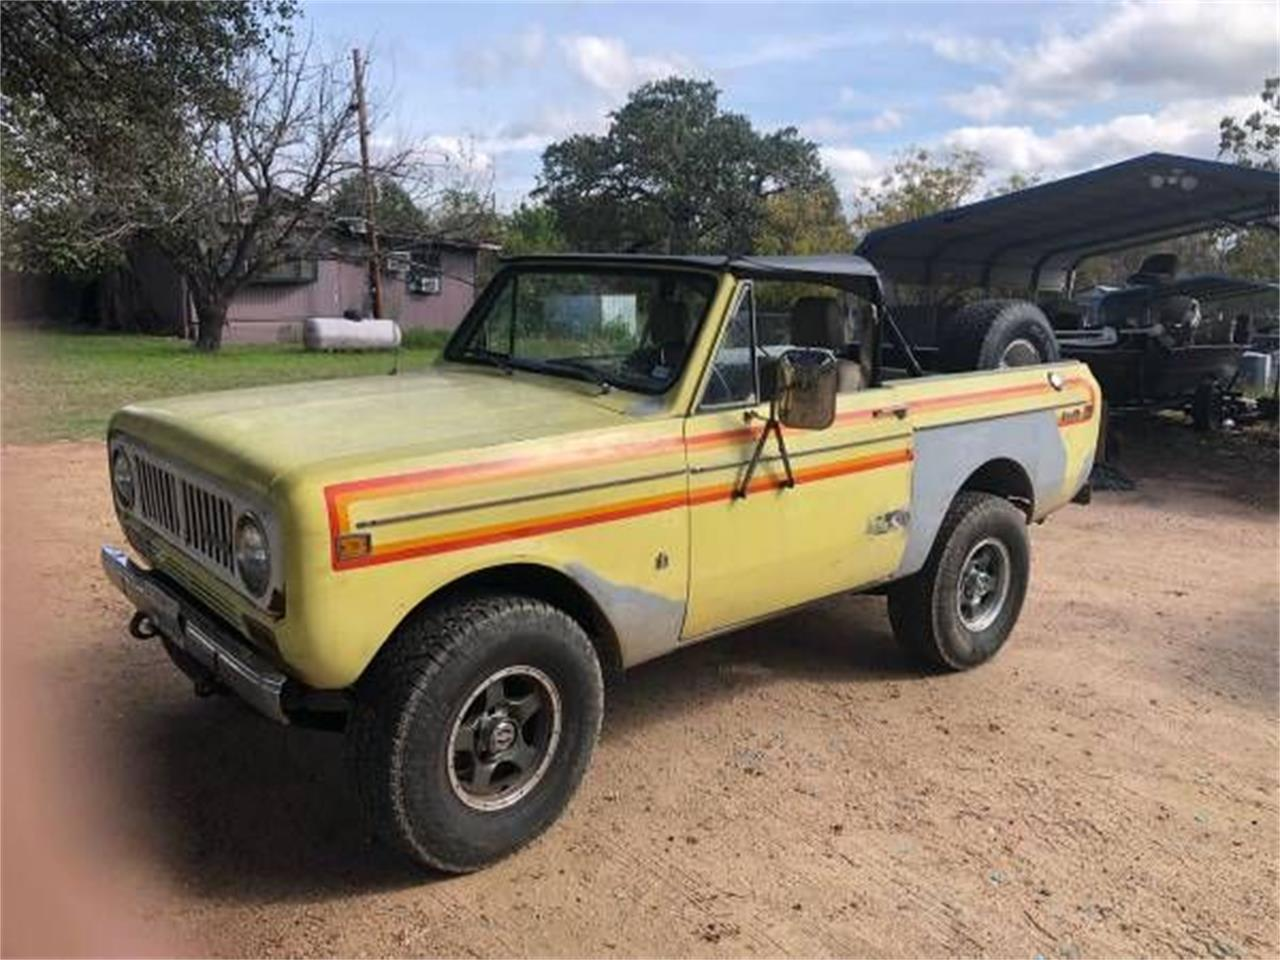 Even project Scouts, such as this one for sale on ClassicCars.com, top the $10,000 mark. | ClassicCars.com photo